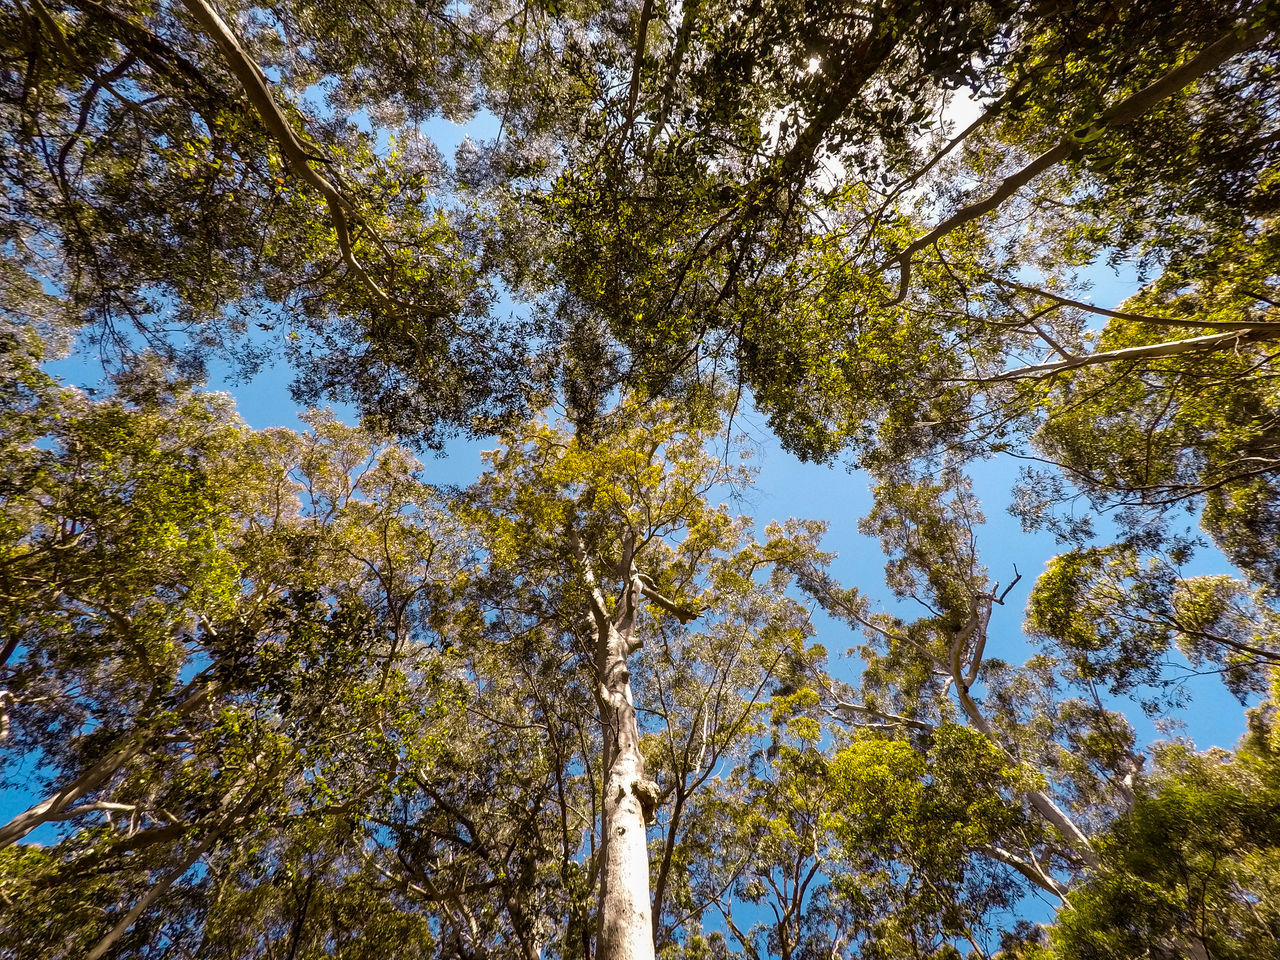 Australian bush / forest along the south-eastern coastline - 360 degree upwards view. 360 Australia Australian Bush Australian Landscape Beauty In Nature Day Green Color Growth Landscapes Low Angle View Low Angle View Nature No People Outdoors Tree